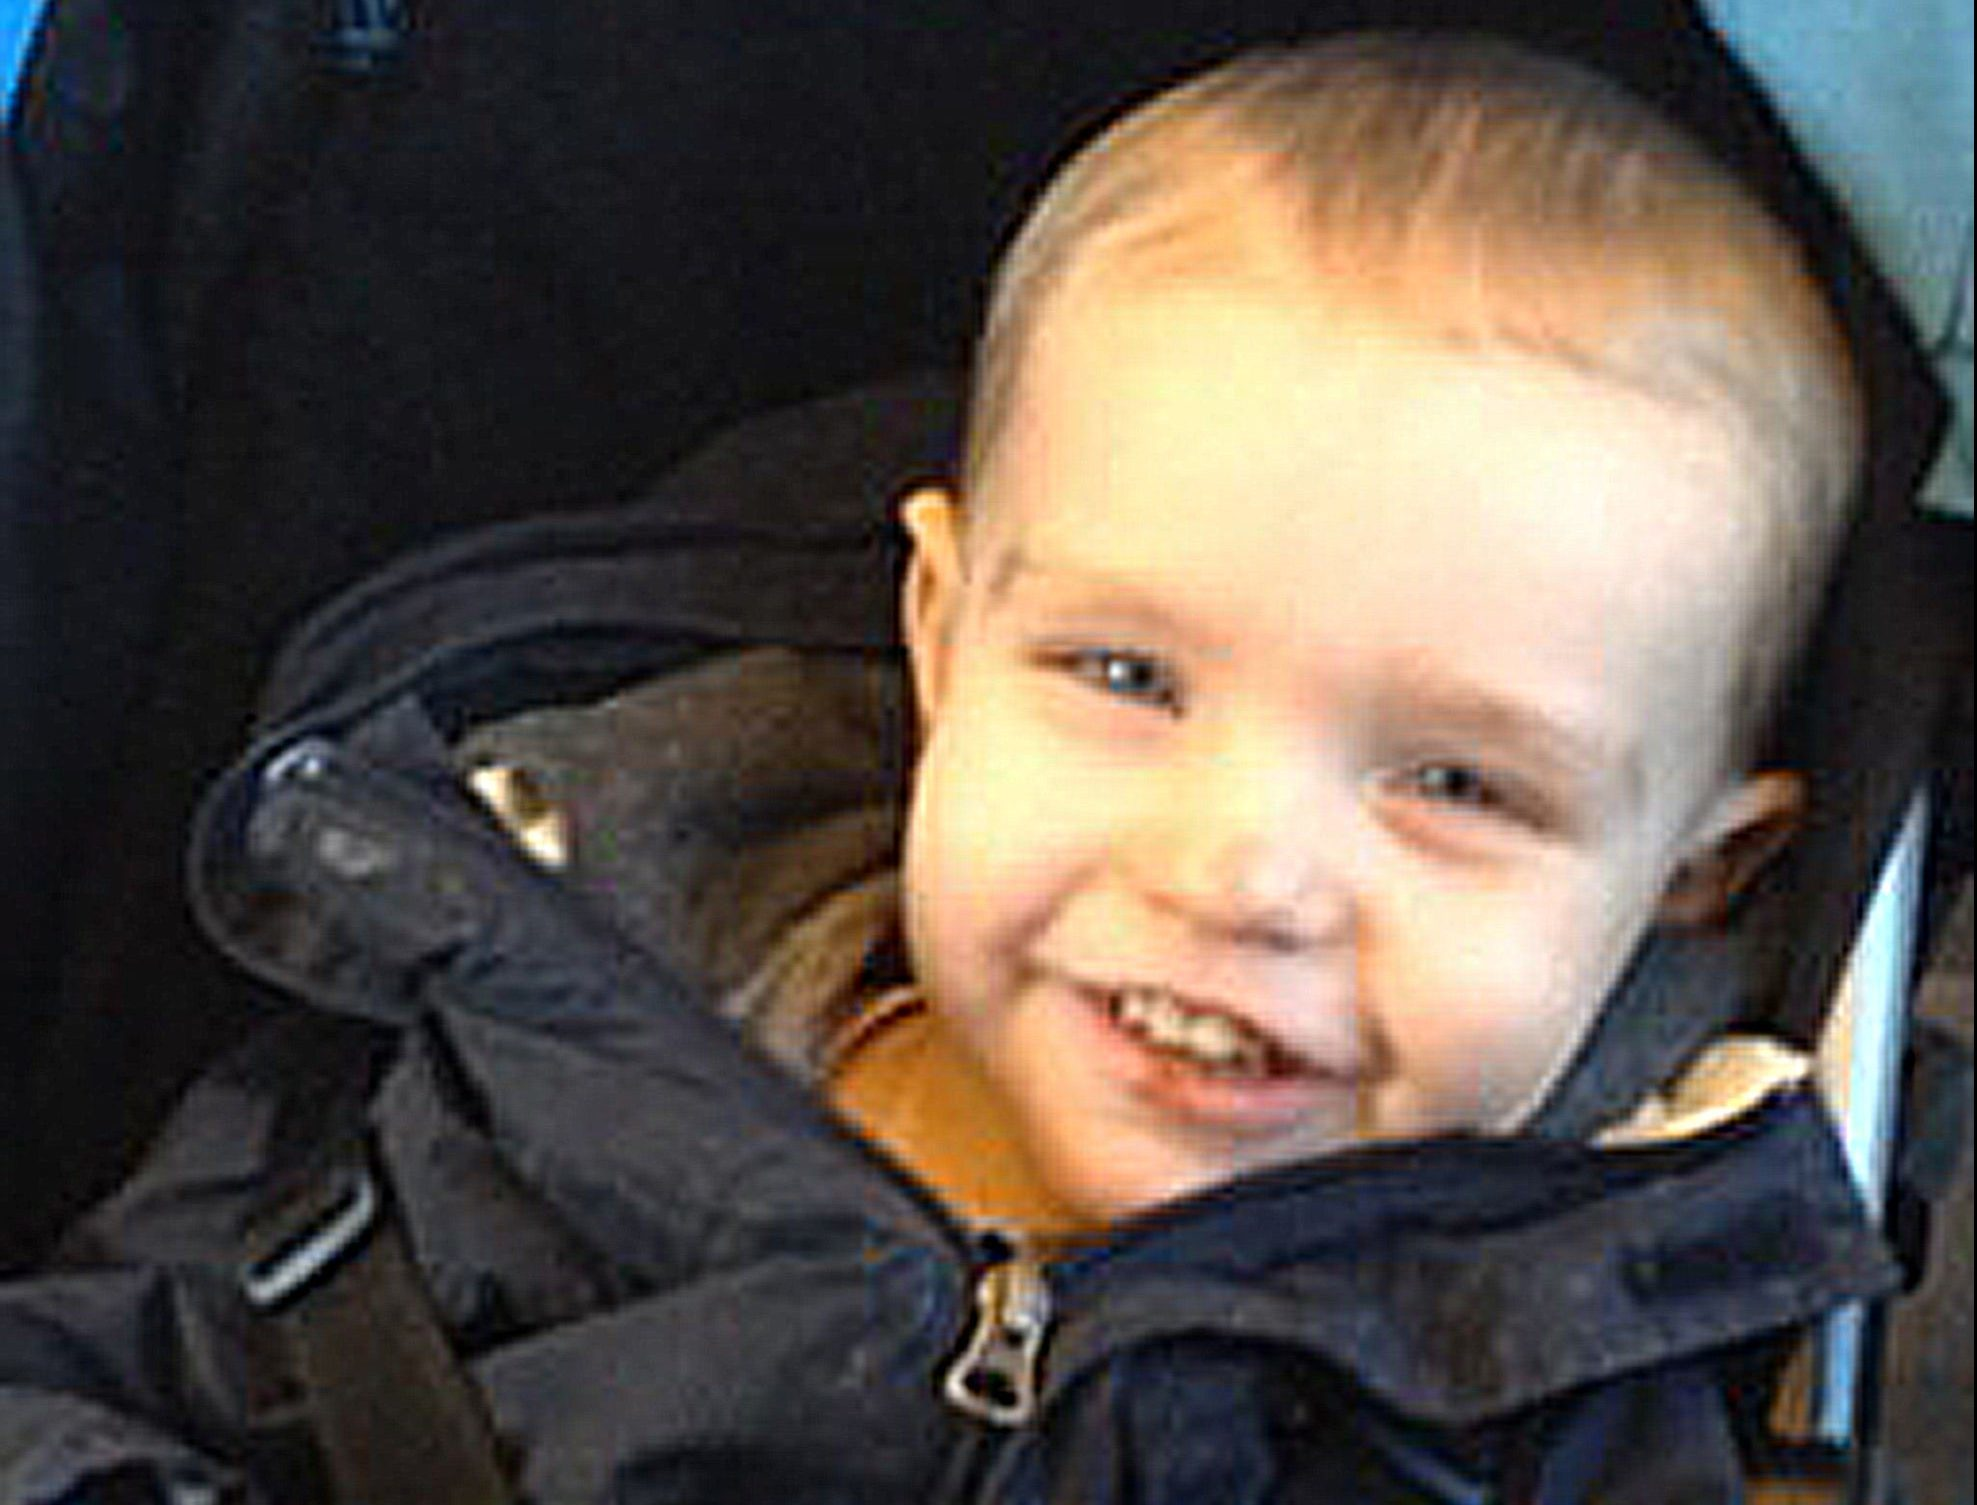 Two-year-old Liam was murdered at his home in Thornton.